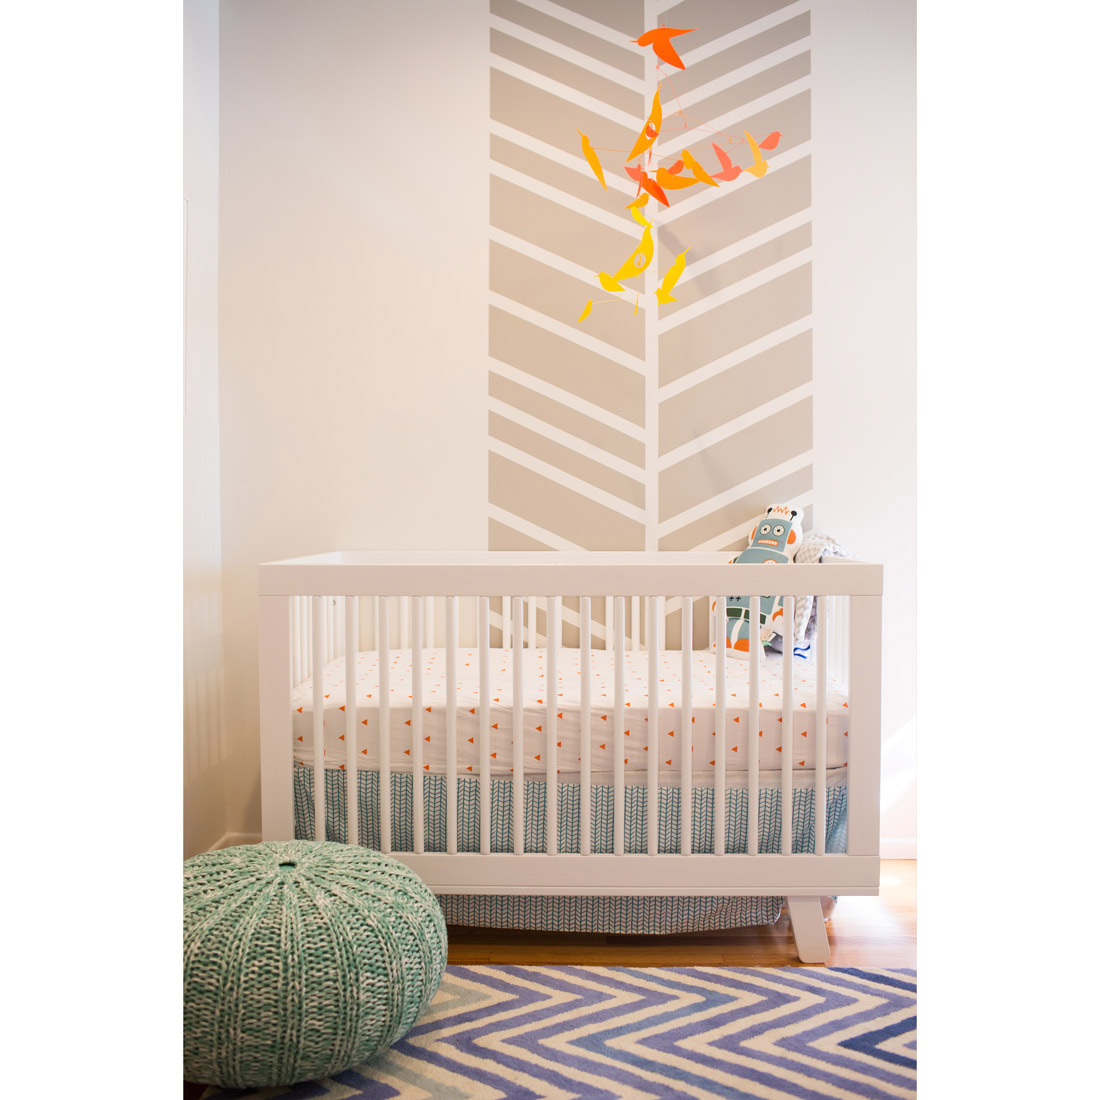 nursery white crib and orange bird moma mobile and chevron painted wall detail with teal pouf and blue zig zag rug design by sara bates interior design